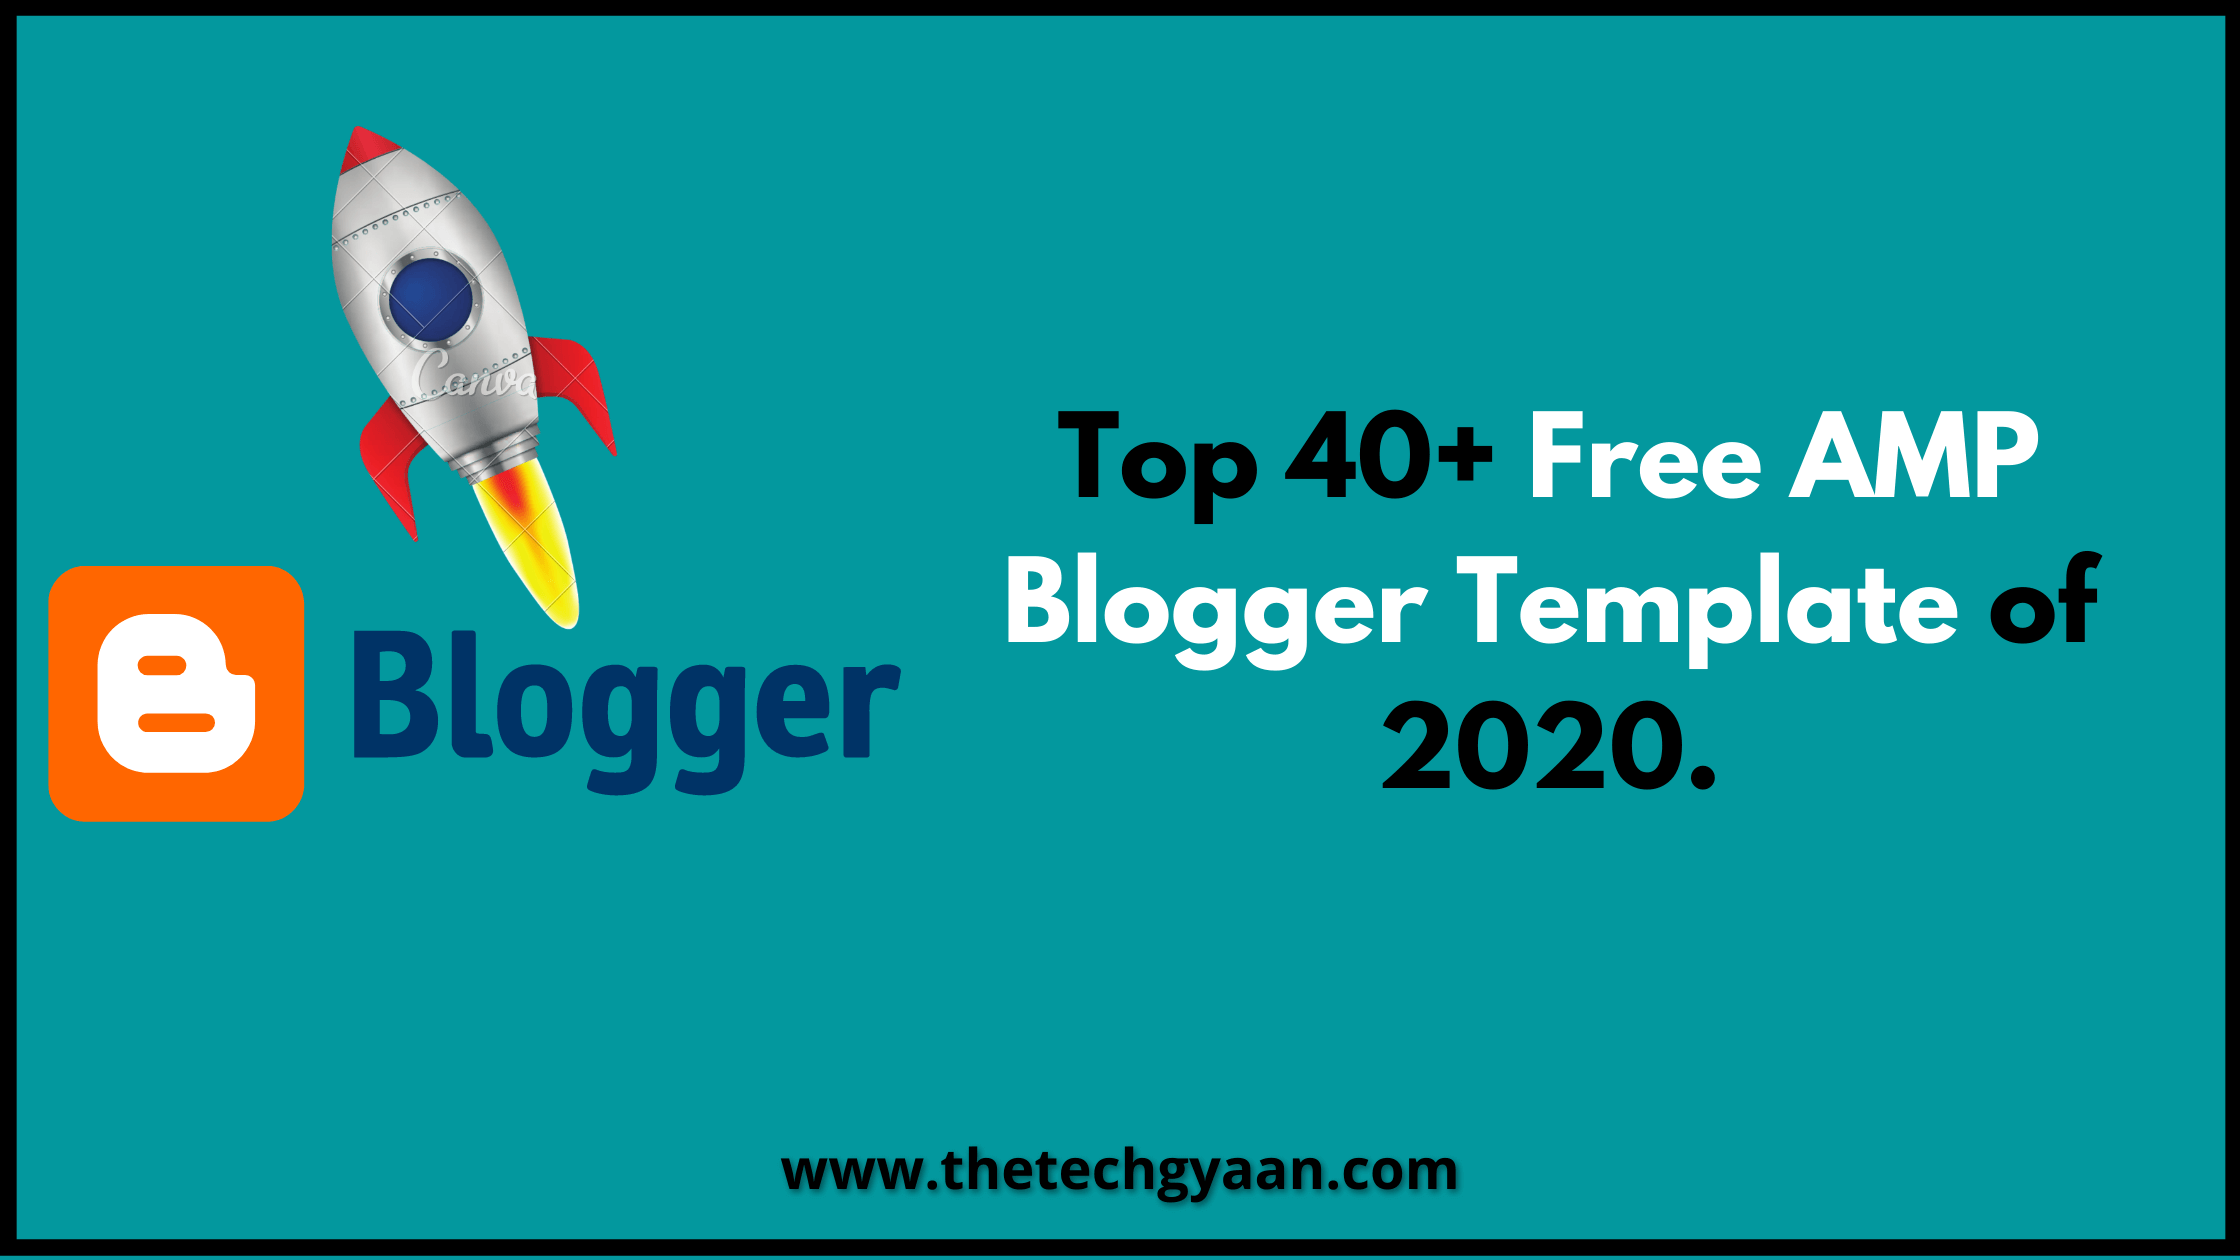 Top 40+ Free AMP Blogger Template of 2020.